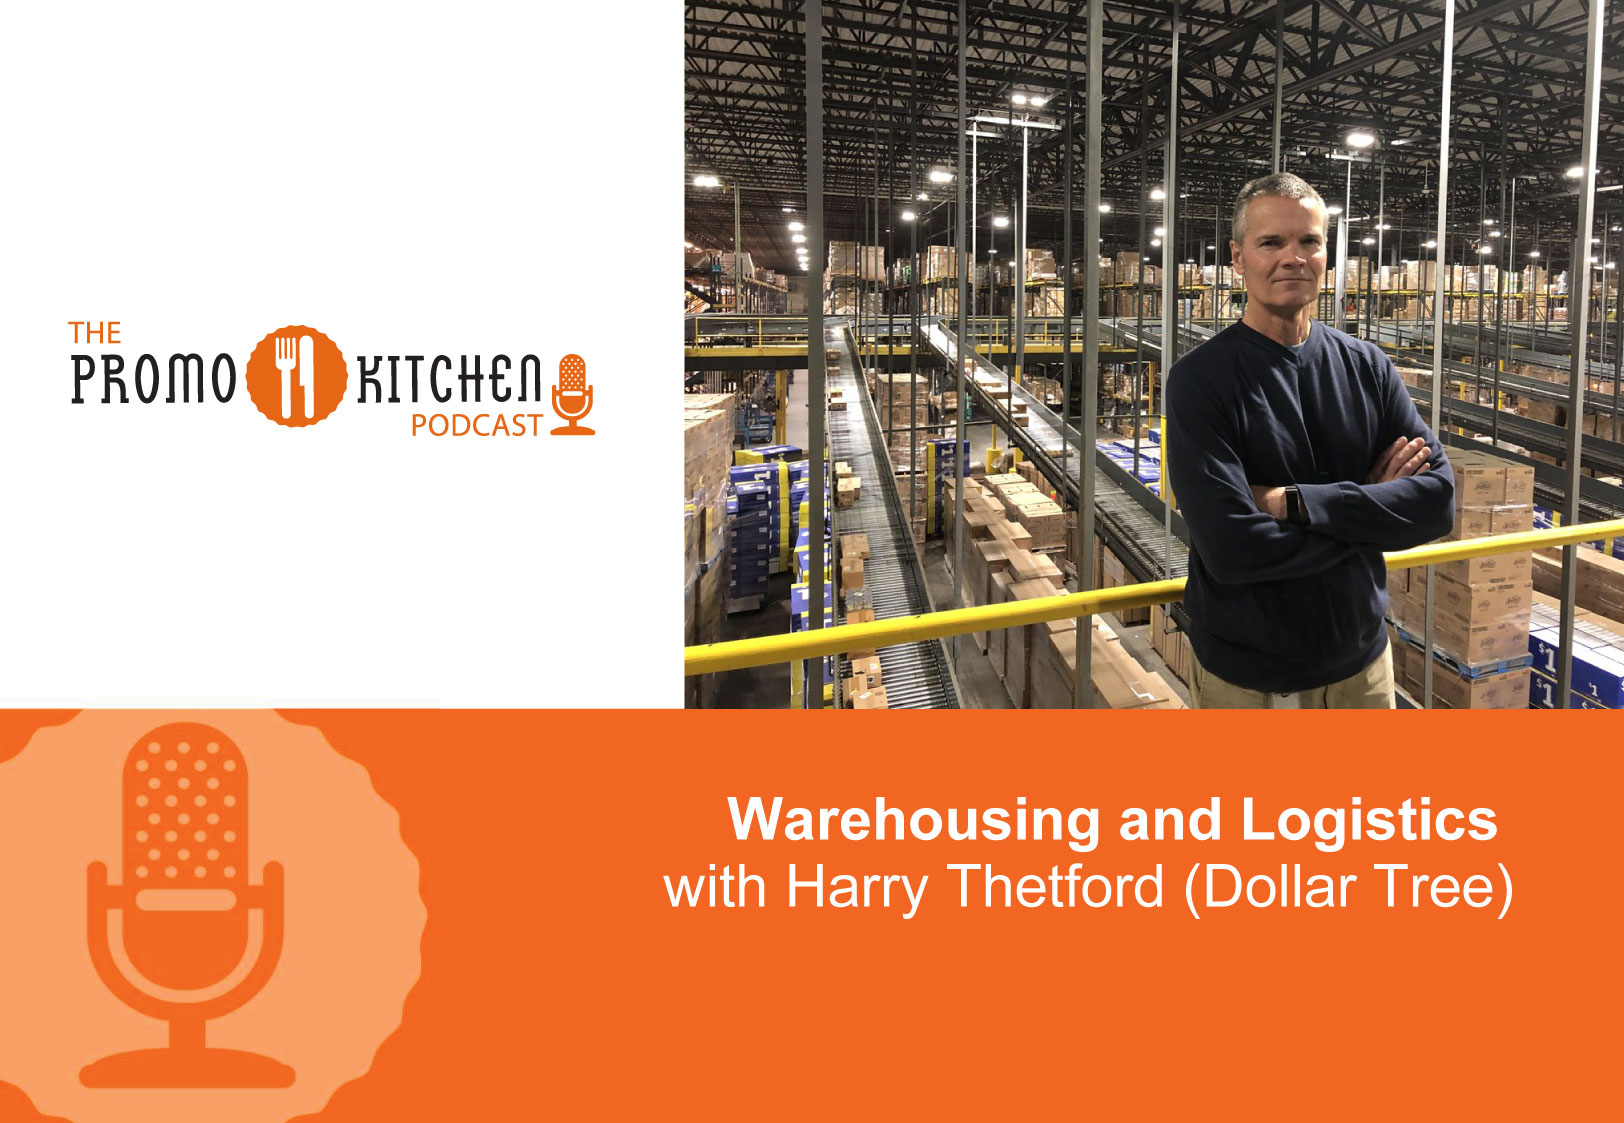 PromoKitchen Podcast: Warehousing and Logistics with Harry